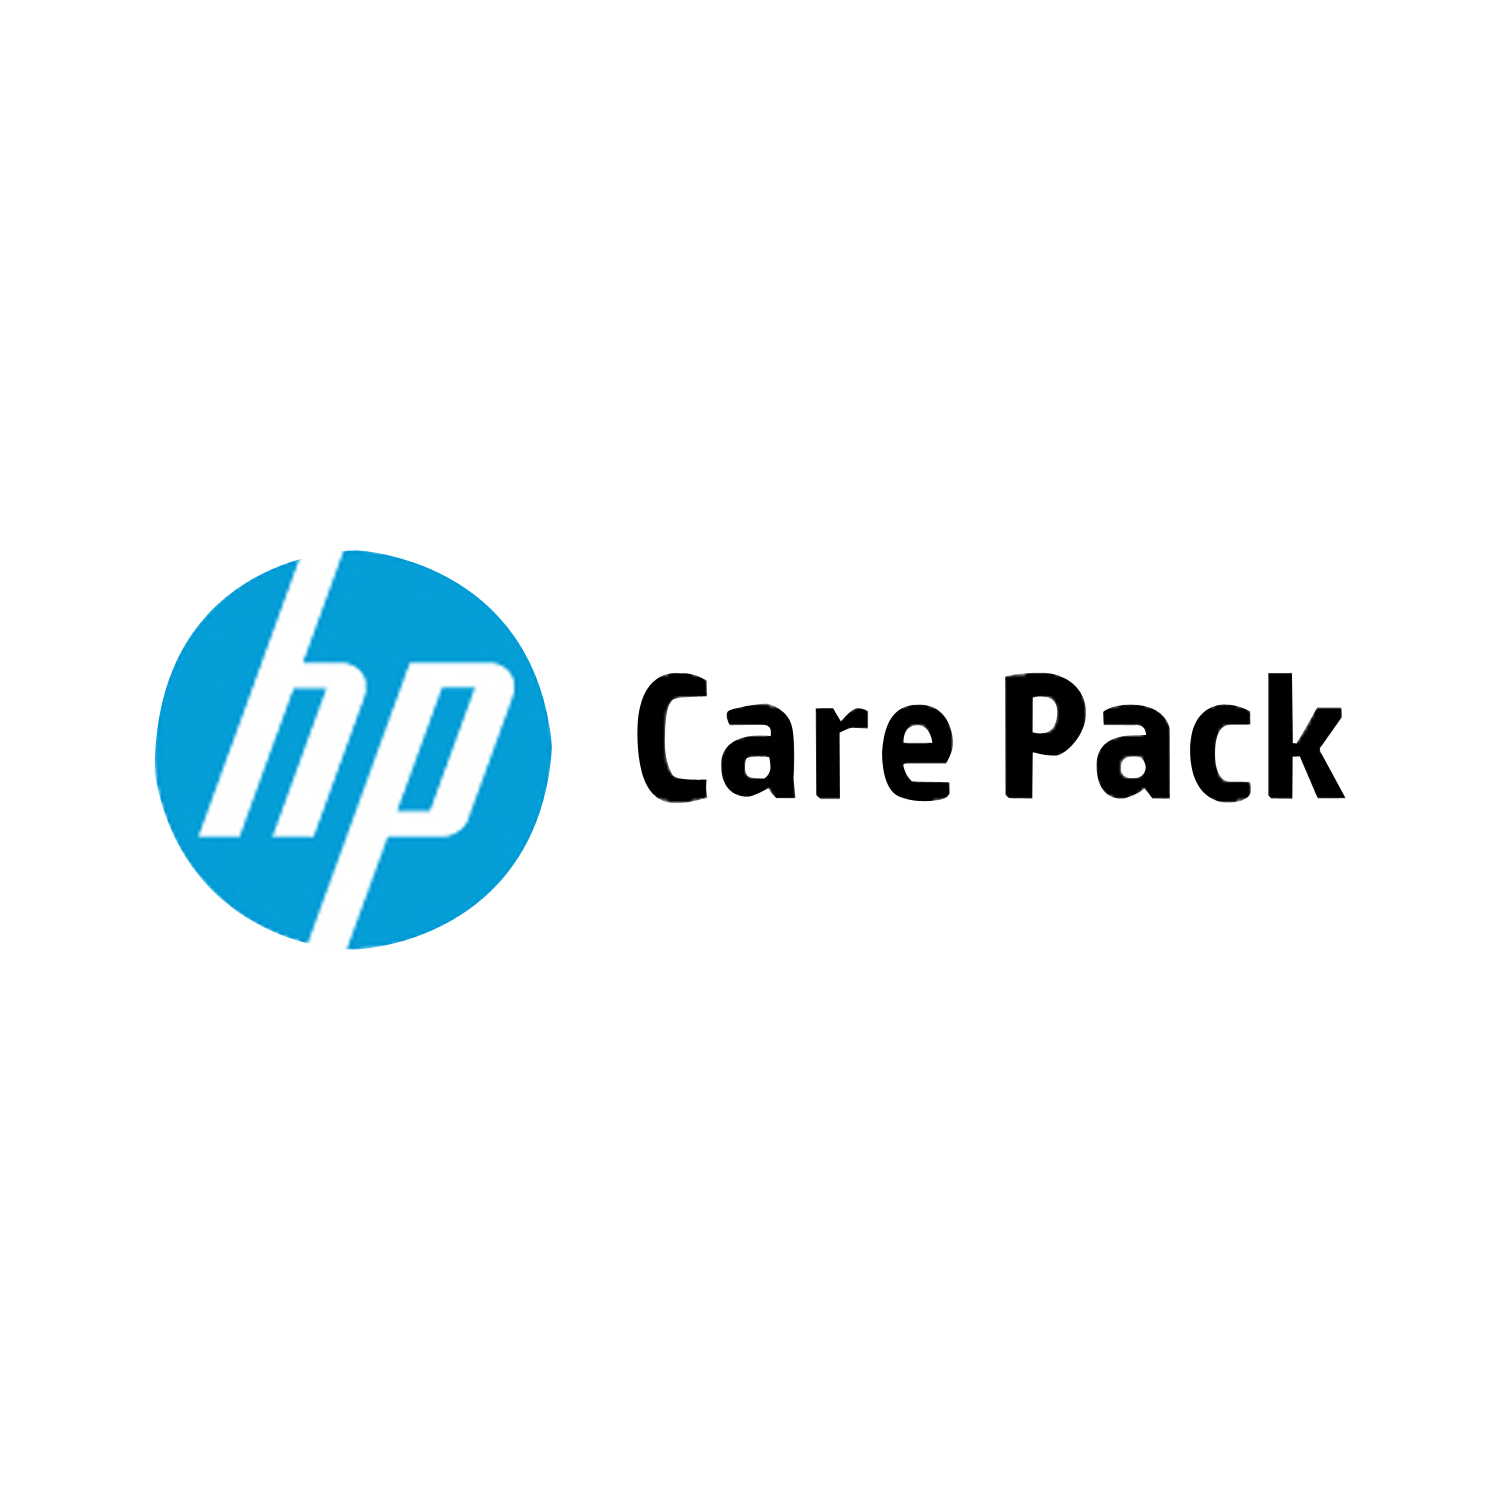 HP 1 assistenza SW 9x5 EmbCap1501-3000 per dispositivo